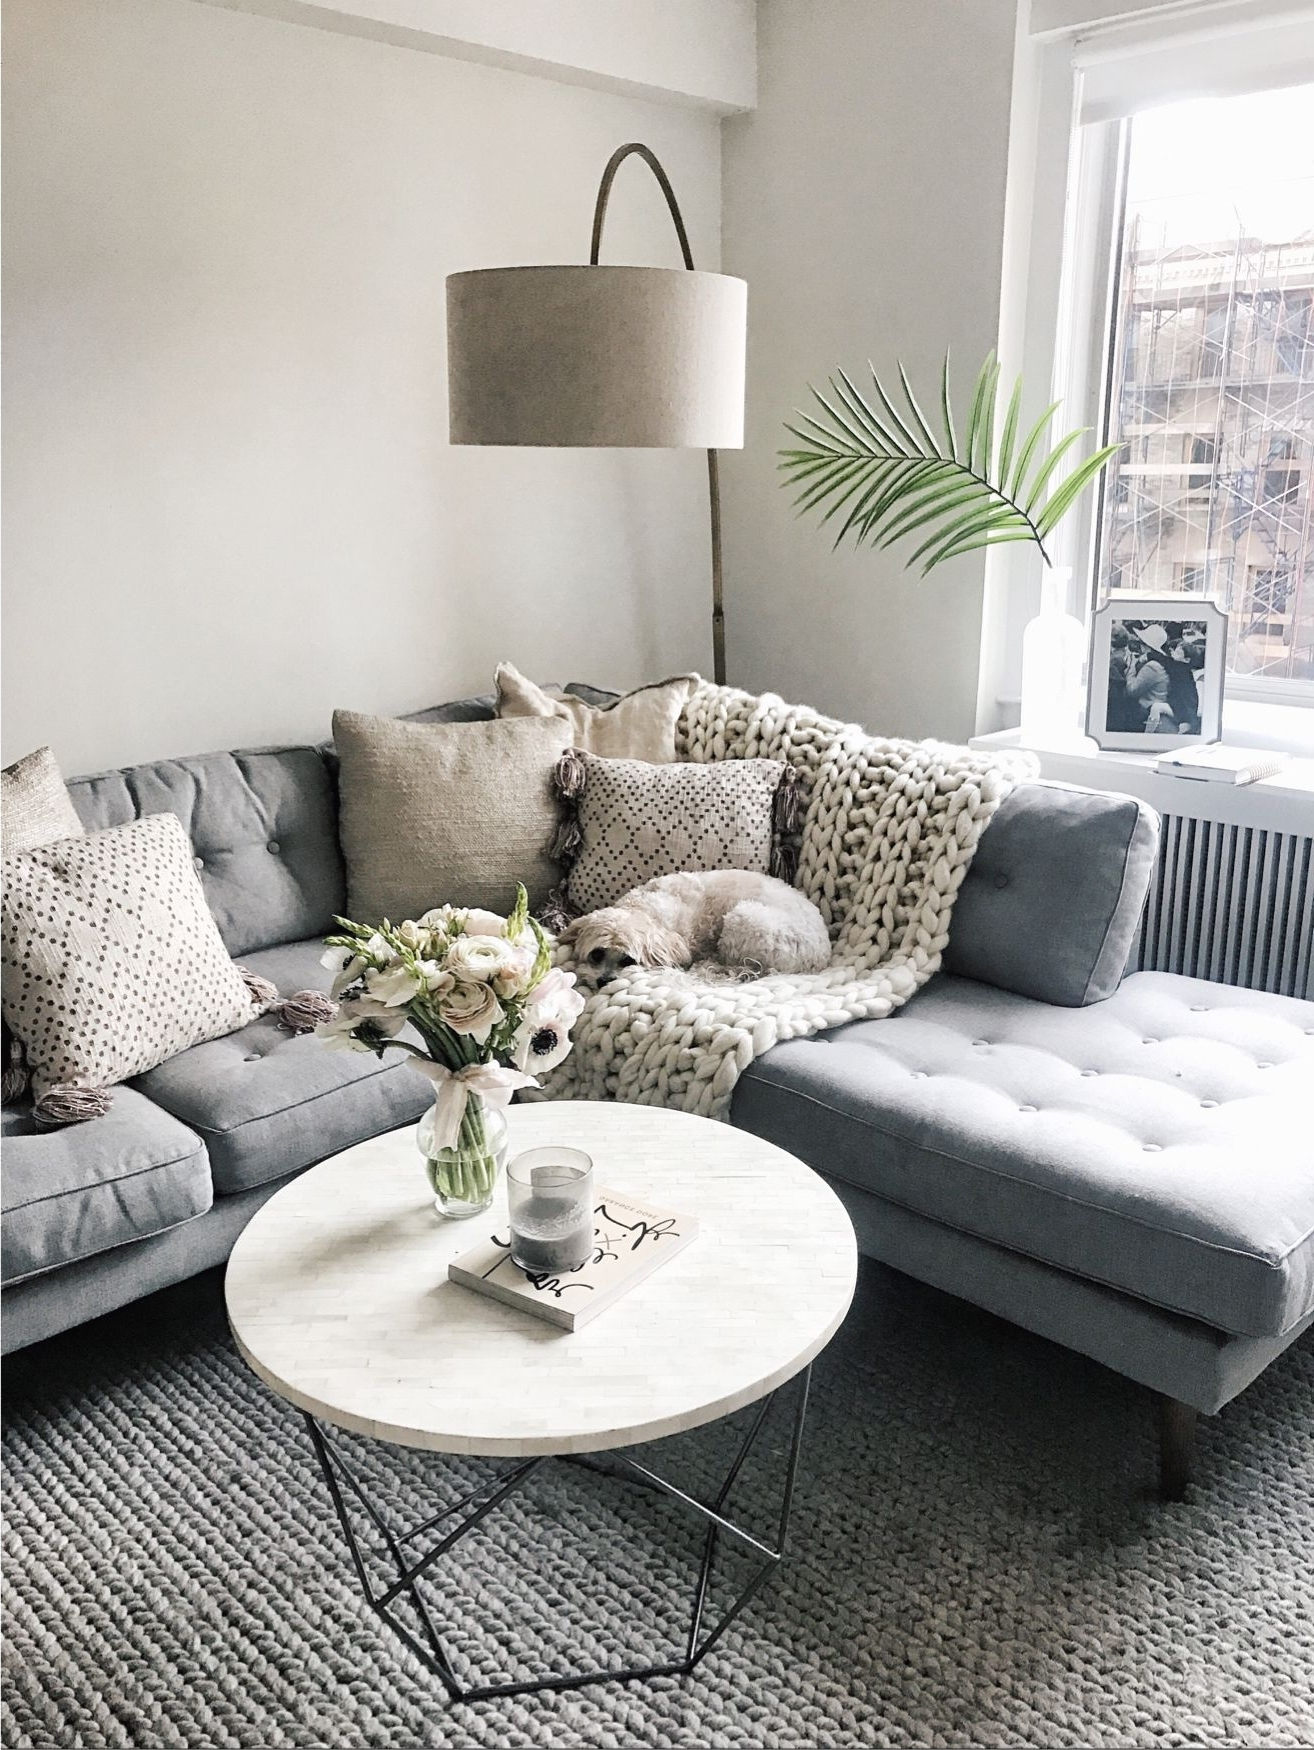 Living Room Coffee Table Lamps For Most Recent Love This West Elm Lamp/round Coffee Table) @liketoknow (View 6 of 15)